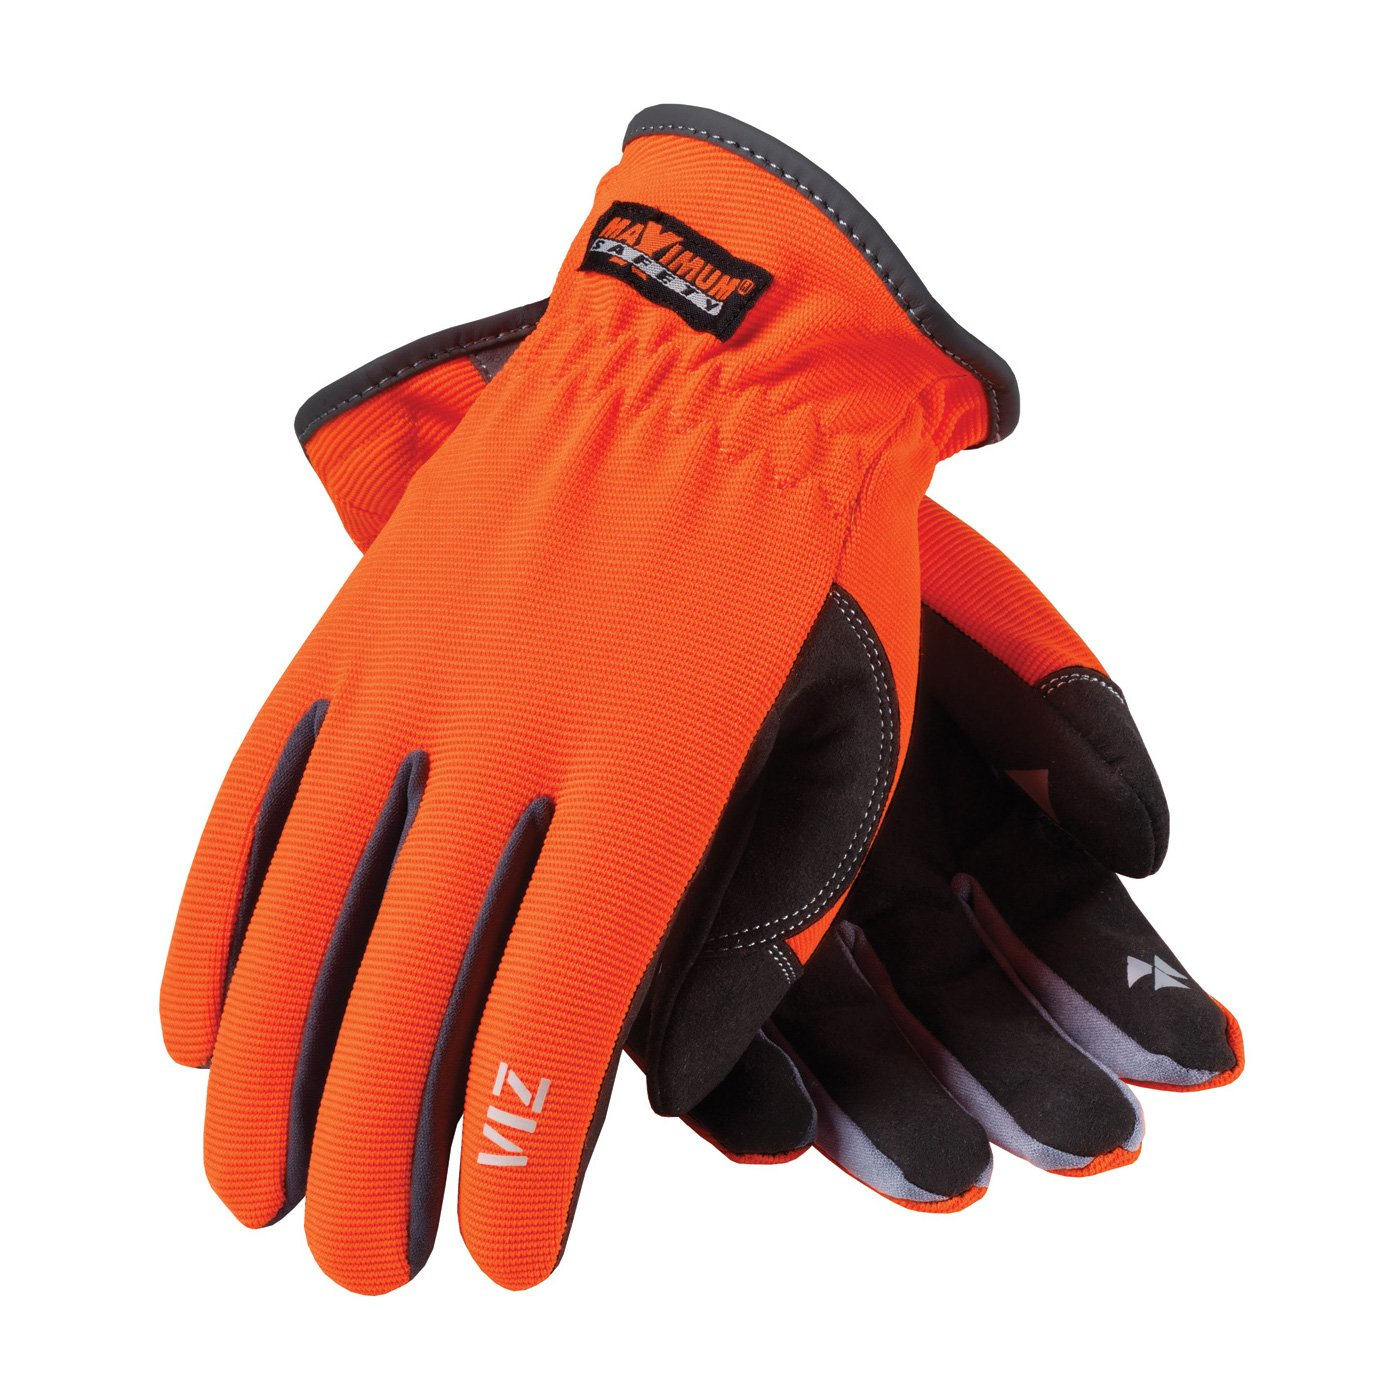 Maximum Safety 120-4600/L  Professional Workman Gloves with Synthetic Leather Palm and High-Visibility Back, Orange/Black, Large